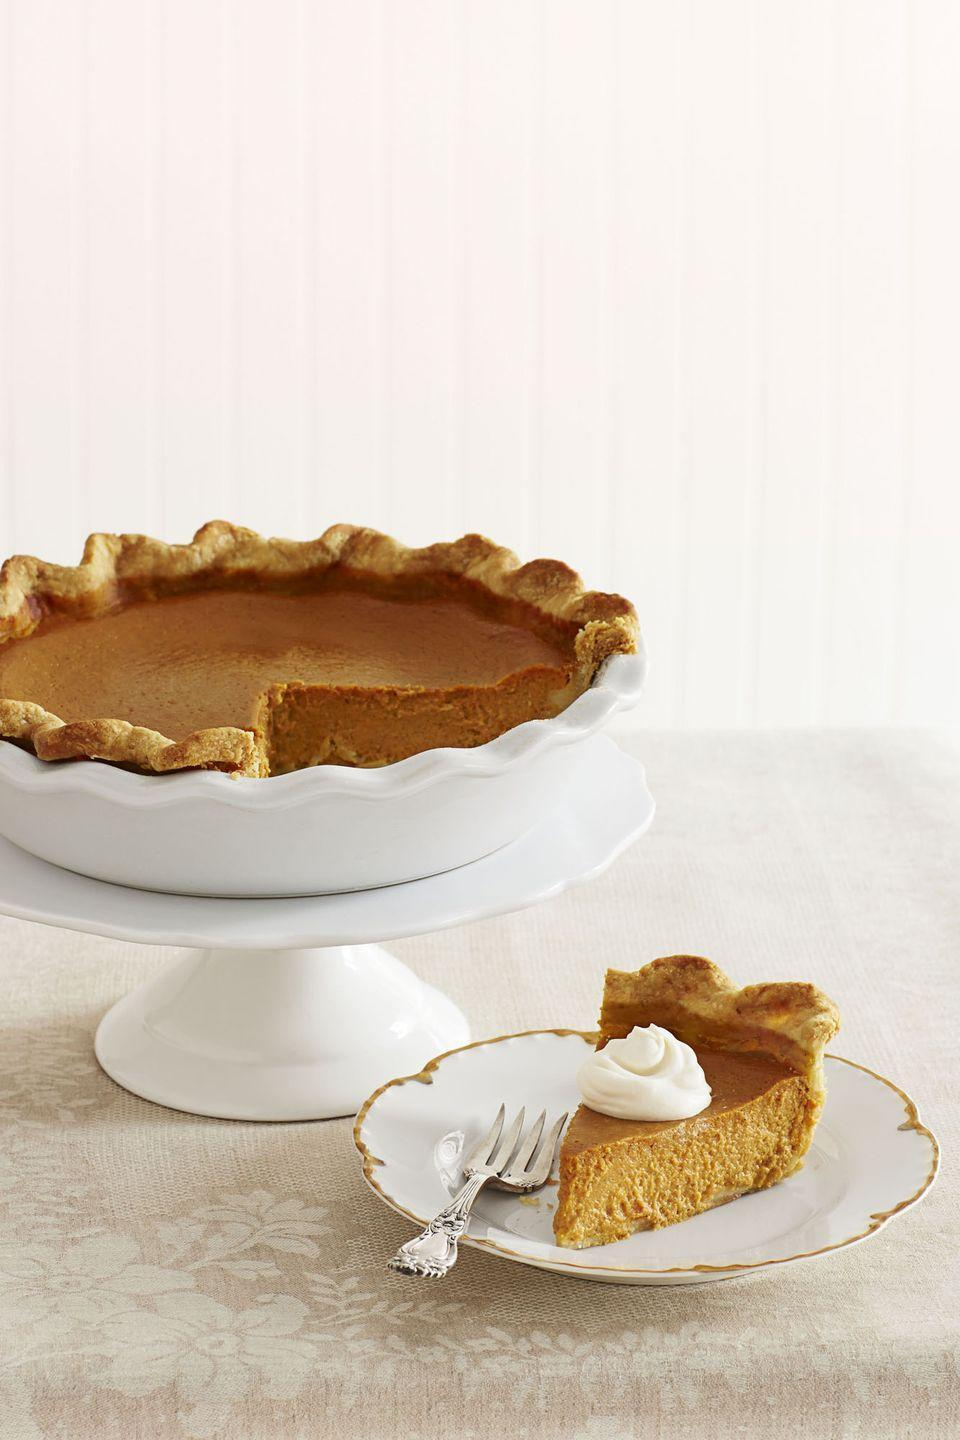 """<p>This pumpkin pie and its whipped cream topping are made with a splash of dark rum, making this American classic even more irresistible. Bonus tip: Start this off by making Garten's famous <a href=""""https://www.goodhousekeeping.com/food-recipes/a15497/perfect-piecrust-recipe-ghk1113/"""" rel=""""nofollow noopener"""" target=""""_blank"""" data-ylk=""""slk:Perfect Piecrust recipe"""" class=""""link rapid-noclick-resp"""">Perfect Piecrust recipe</a>.</p><p><em><a href=""""https://www.goodhousekeeping.com/food-recipes/a15954/ultimate-pumpkin-pie-rum-whipped-cream-recipe-ghk1113/"""" rel=""""nofollow noopener"""" target=""""_blank"""" data-ylk=""""slk:Get the recipe for Ultimate Pumpkin Pie with Rum Whipped Cream »"""" class=""""link rapid-noclick-resp"""">Get the recipe for Ultimate Pumpkin Pie with Rum Whipped Cream »</a></em> </p>"""